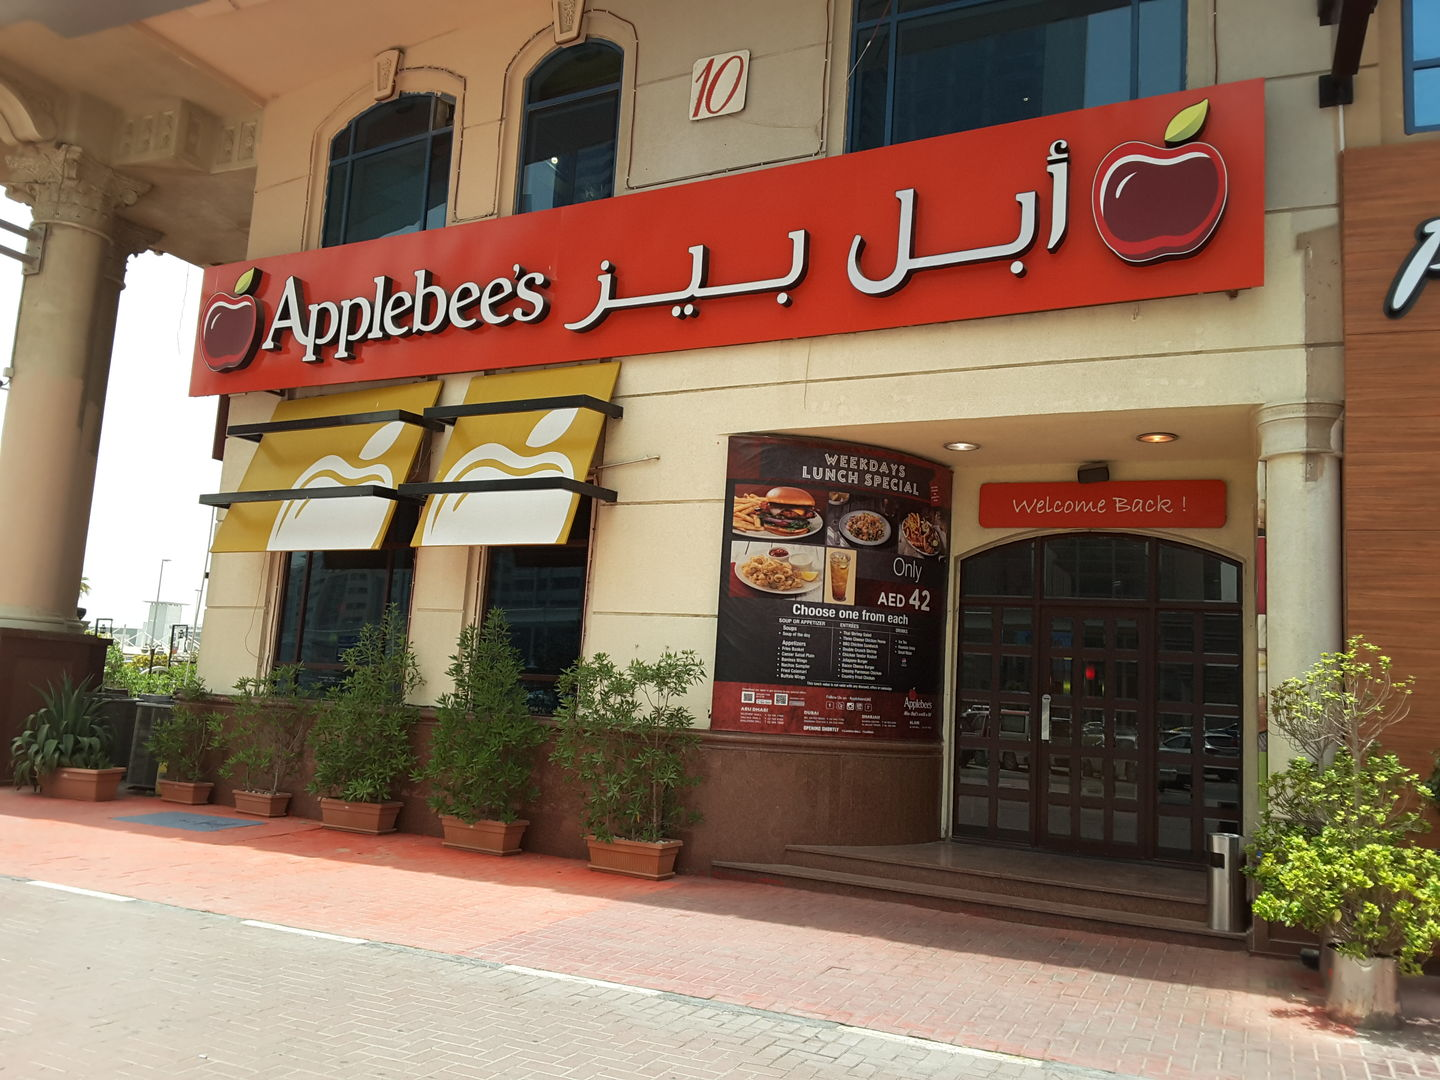 HiDubai-business-applebees-food-beverage-restaurants-bars-sheikh-zayed-road-2-trade-centre-2-dubai-2